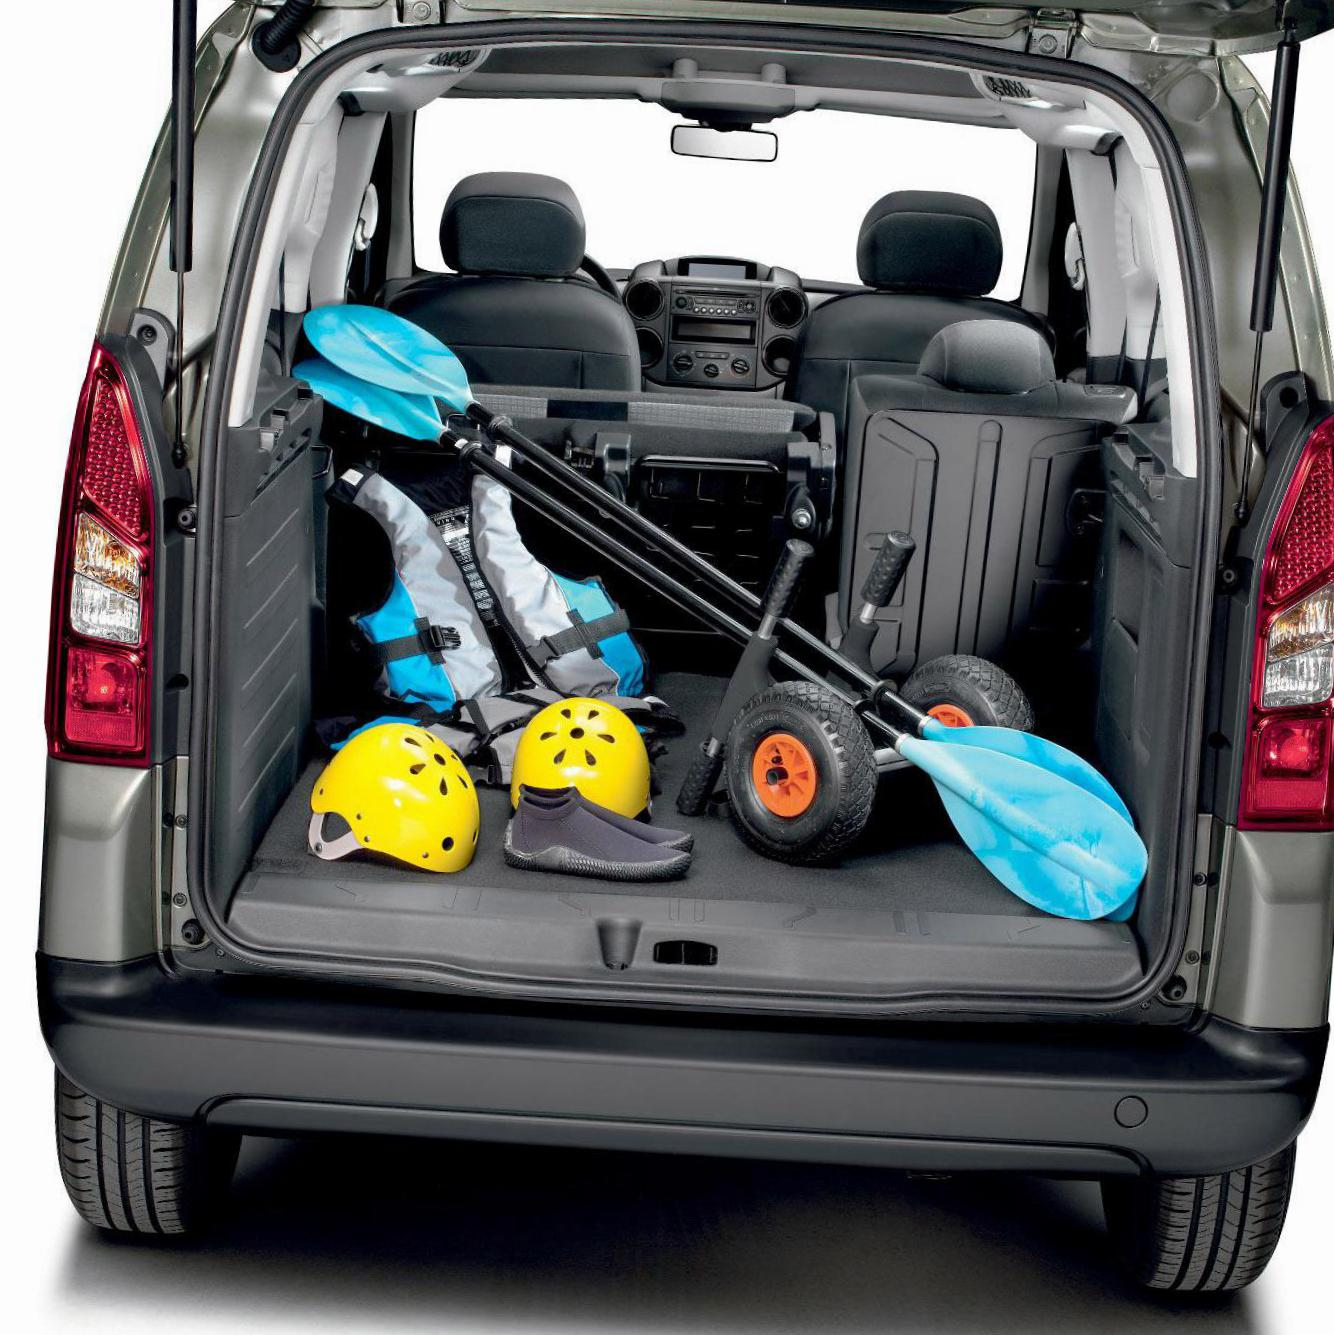 Citroen Berlingo Multispace configuration 2011